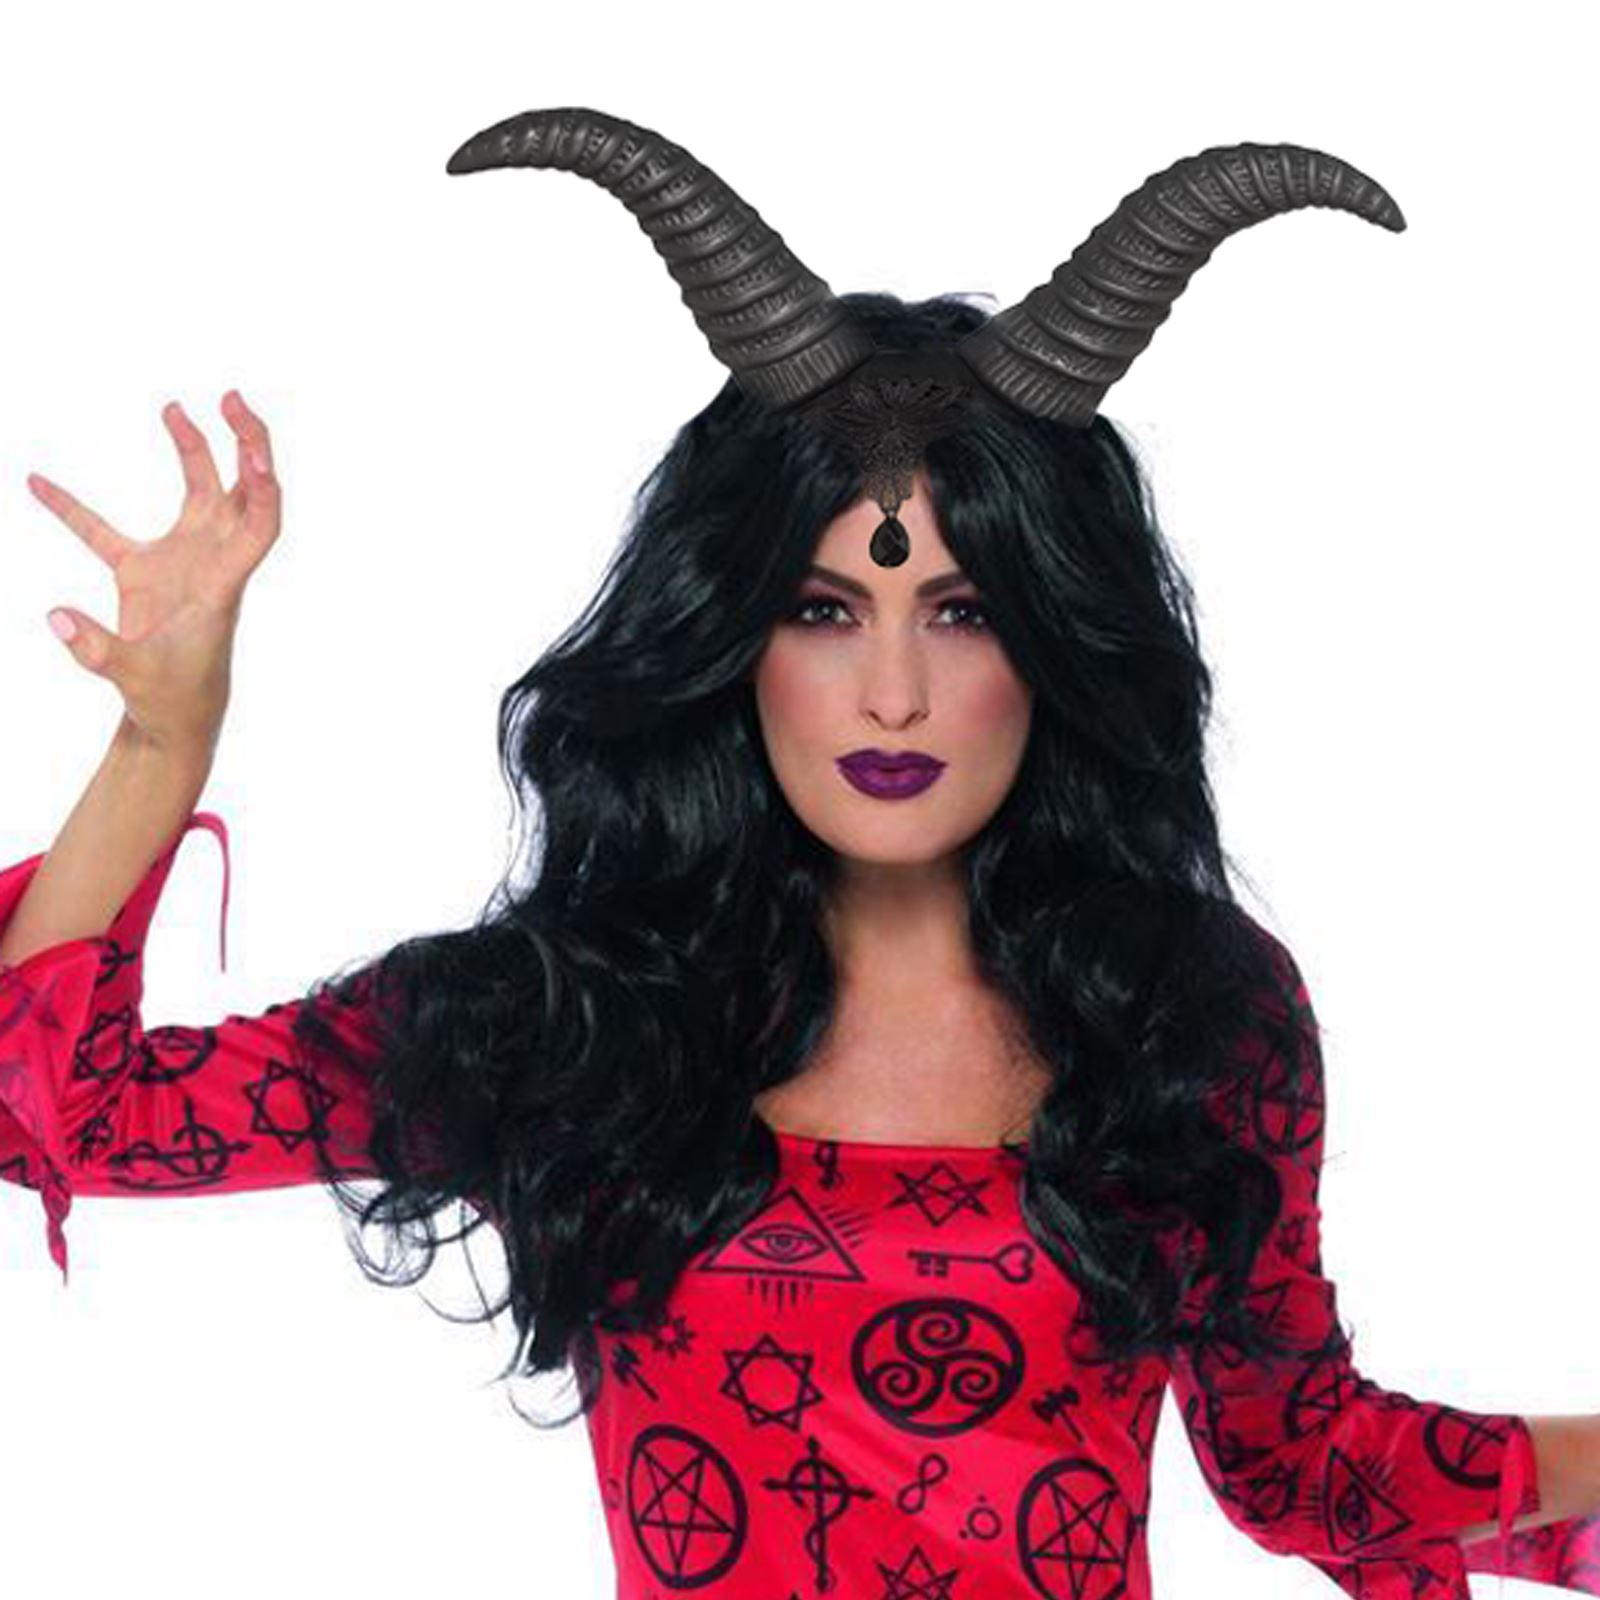 Halloween Costume 303.Details About Adult Ladies Occult Devil Demonic Witchcraft Halloween Costume Demon Horns